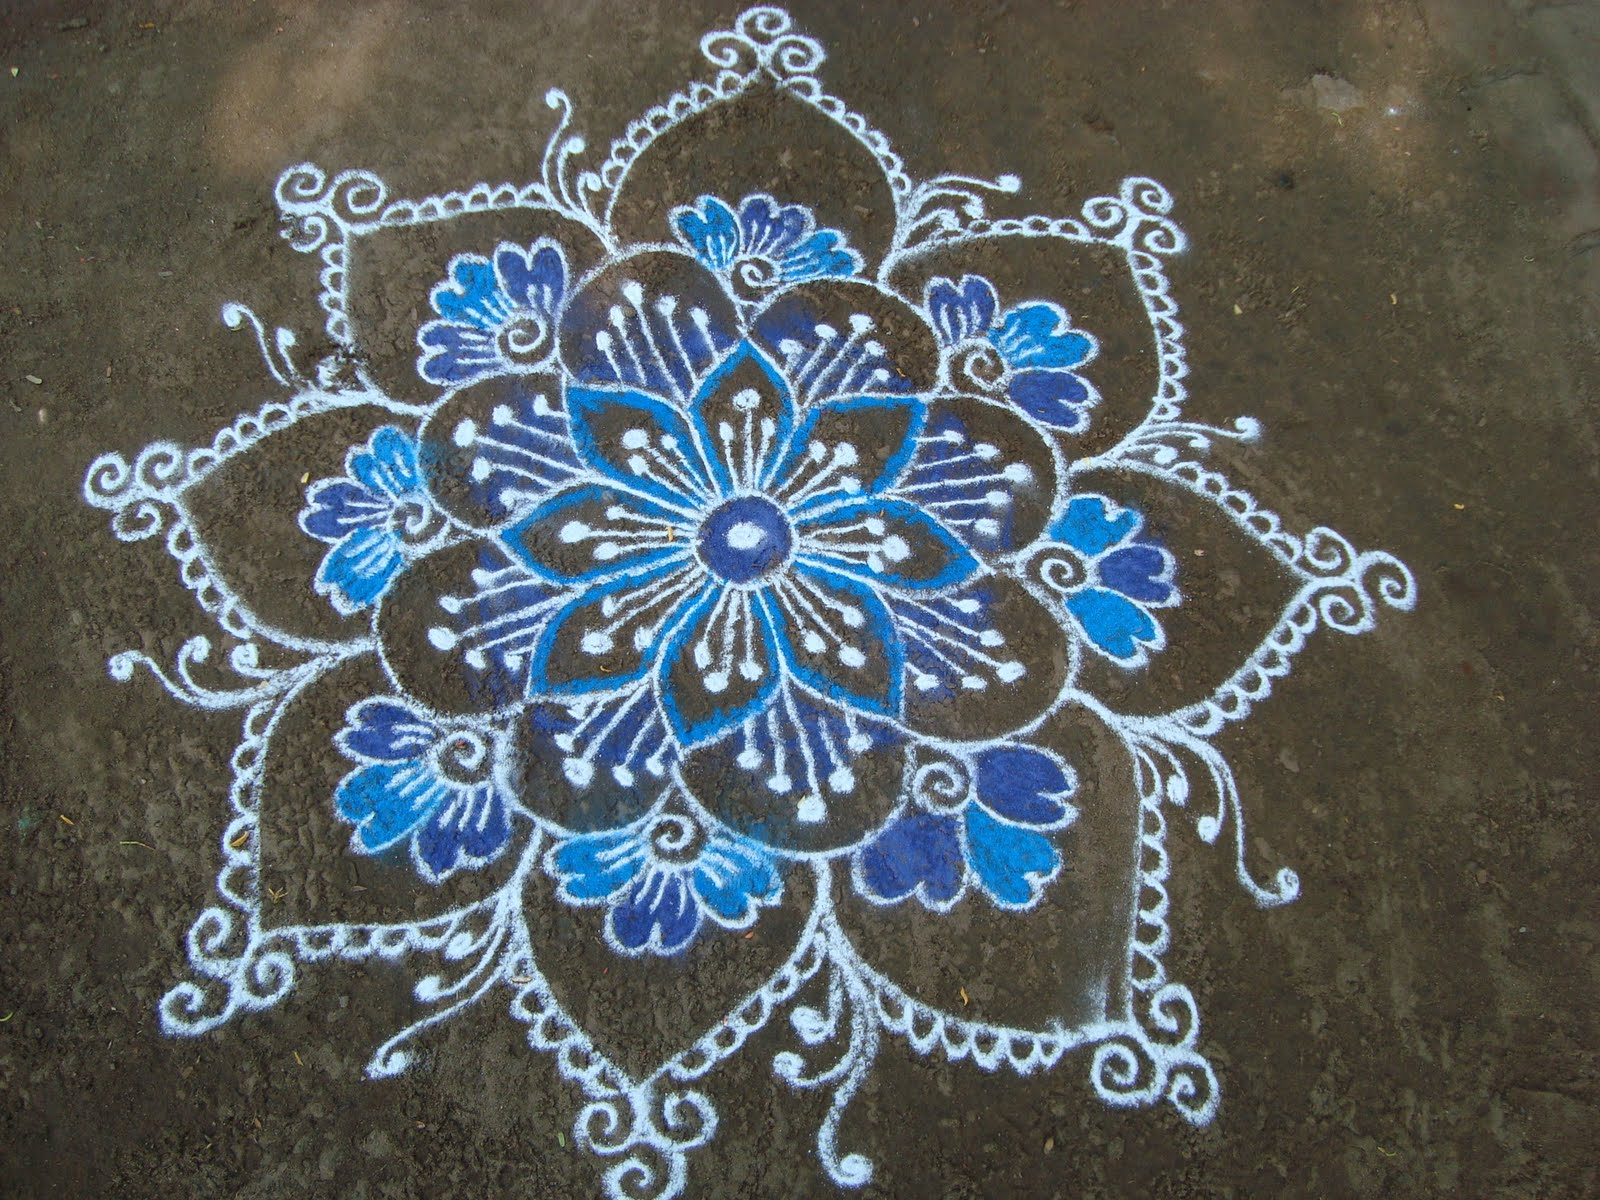 Made This Kolam For Blue Day Celebration